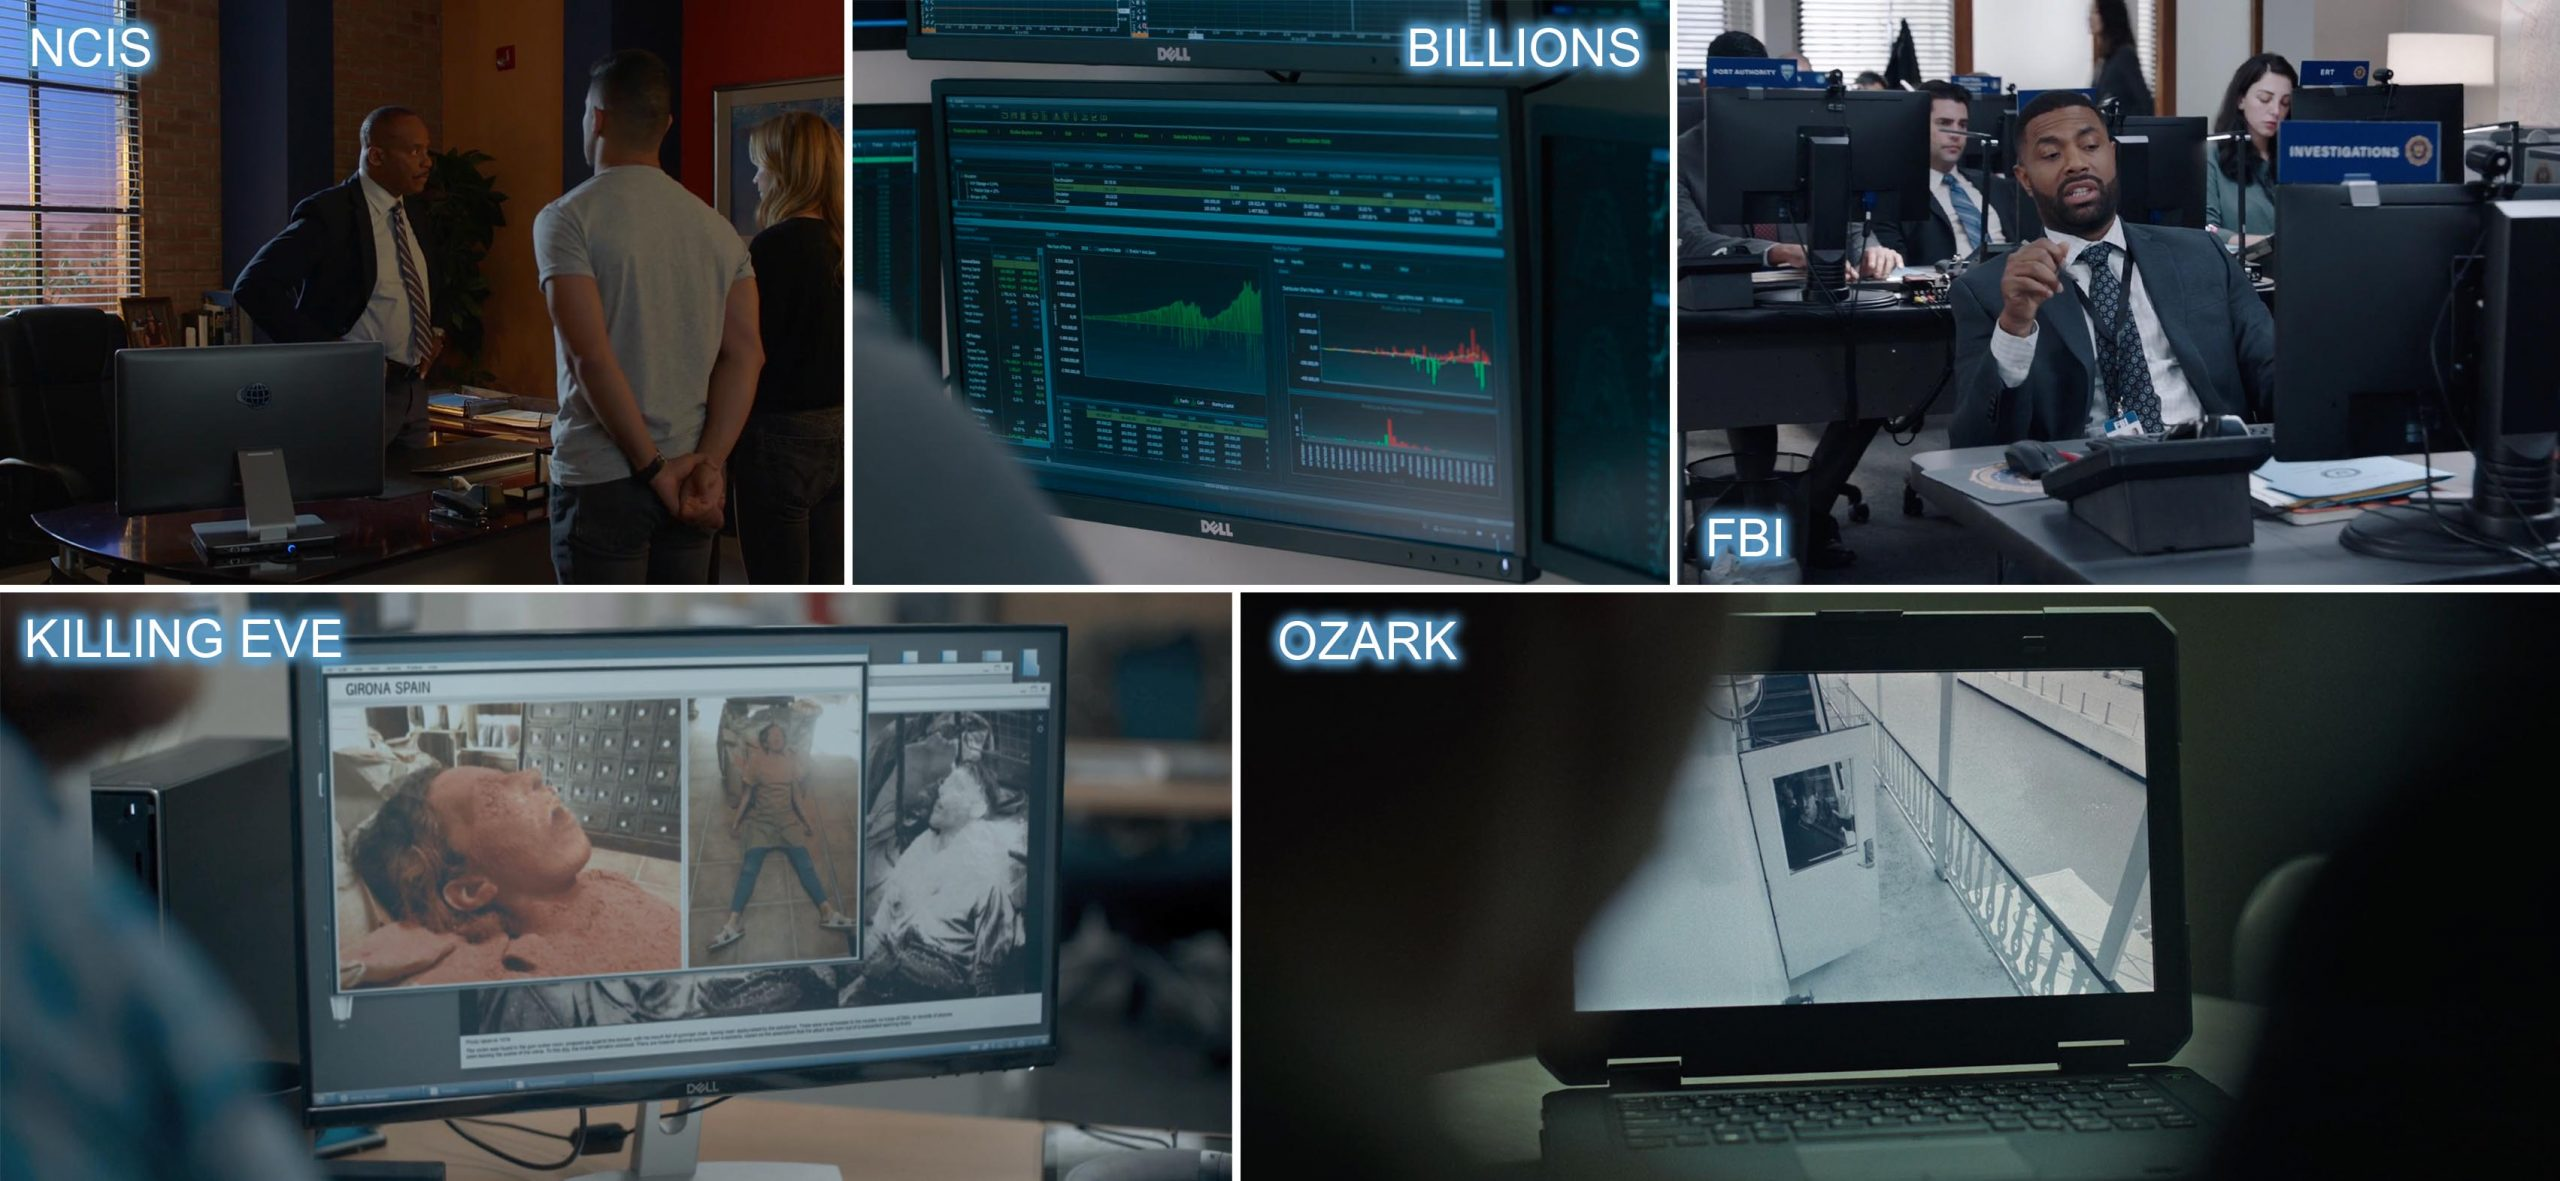 Dell product placement in NCIS, BILLIONS, FBI, KILLING EVE and OZARK.